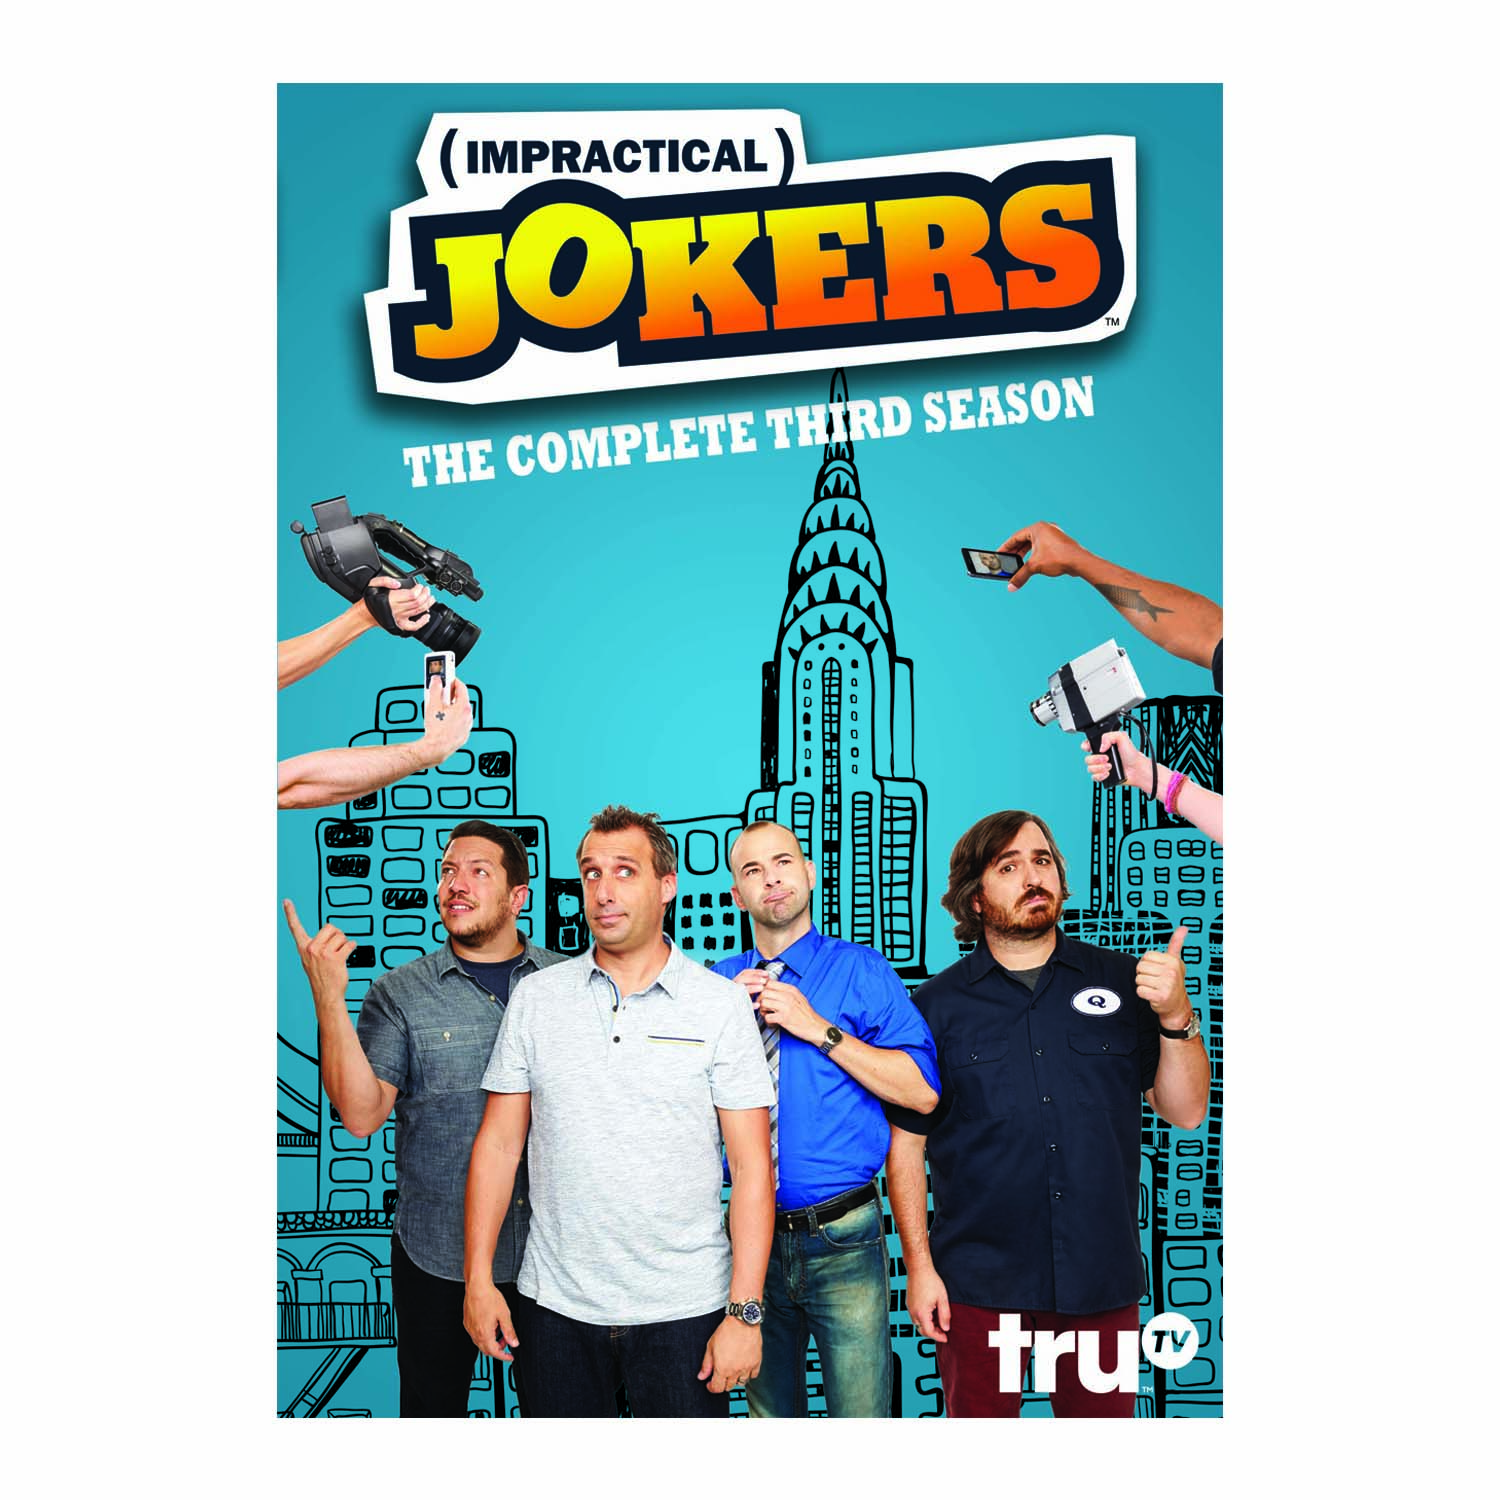 Impractical Jokers Season 3